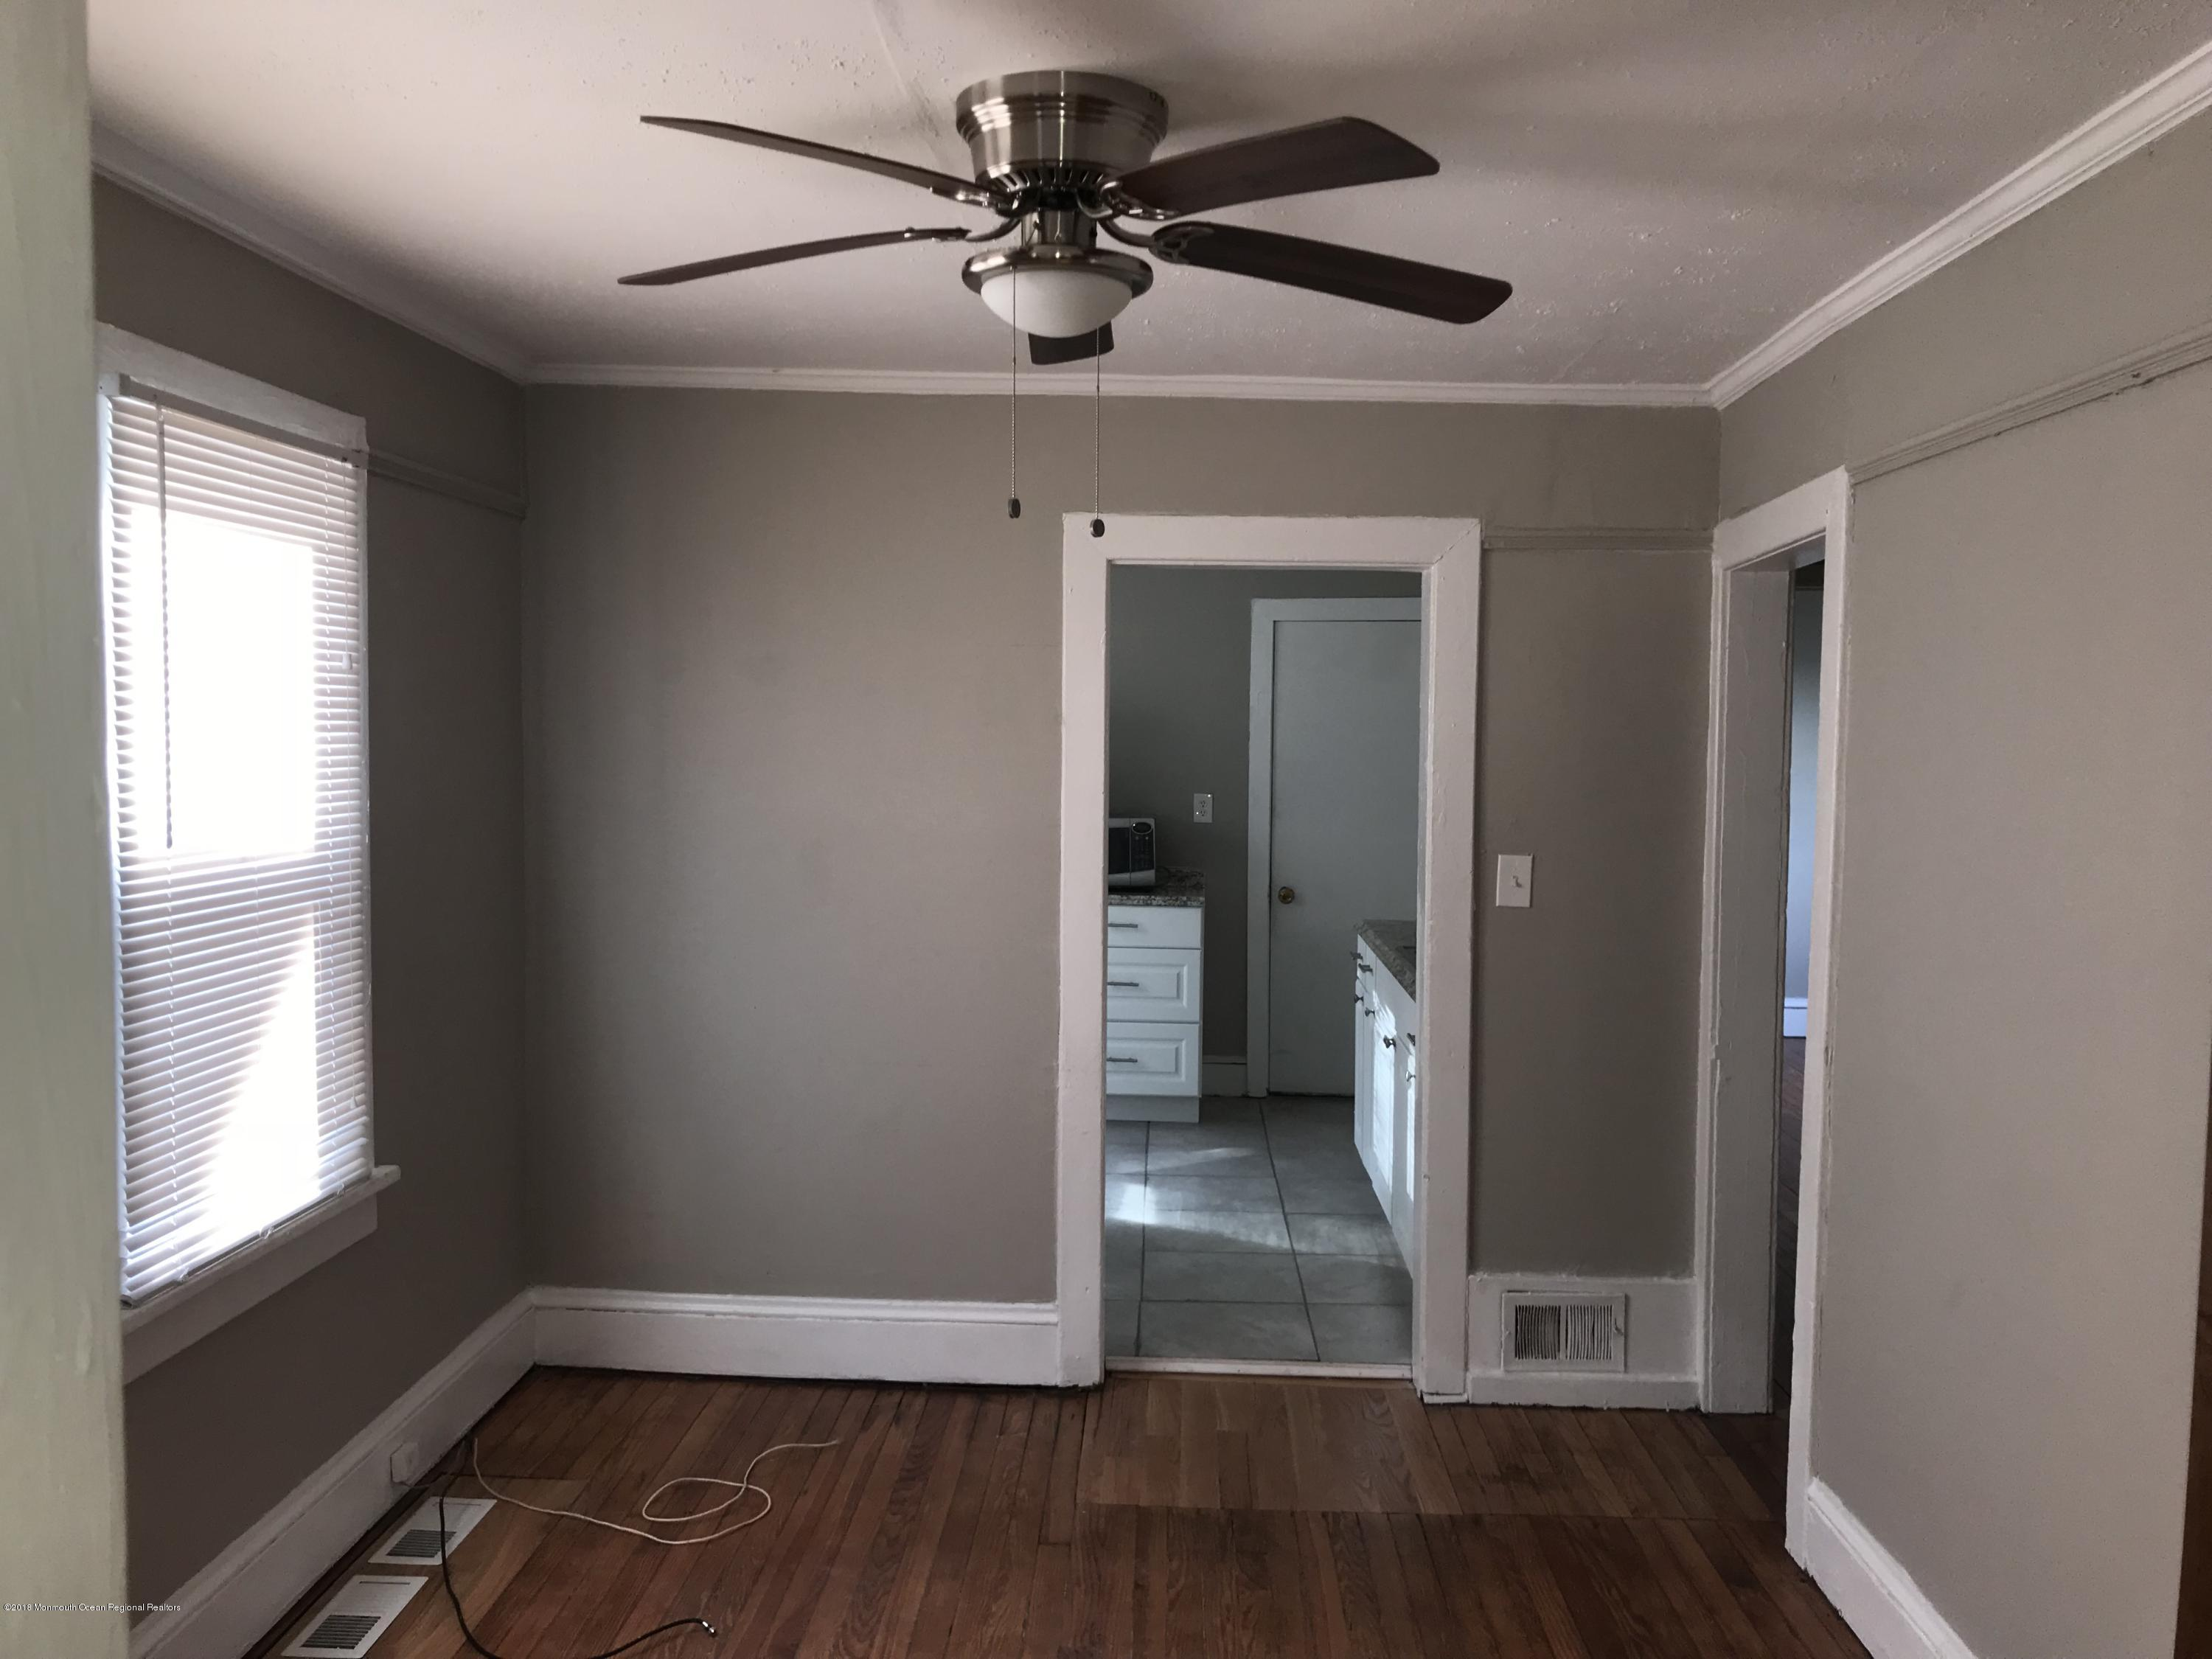 Available for rent now! Newly renovated downstairs unit. Bright and light apartment with refinished HW floors, new appliances, fixtures, bathroom. Huge backyard, wonderful porch in an up and coming neighborhood. Credit check, good references.